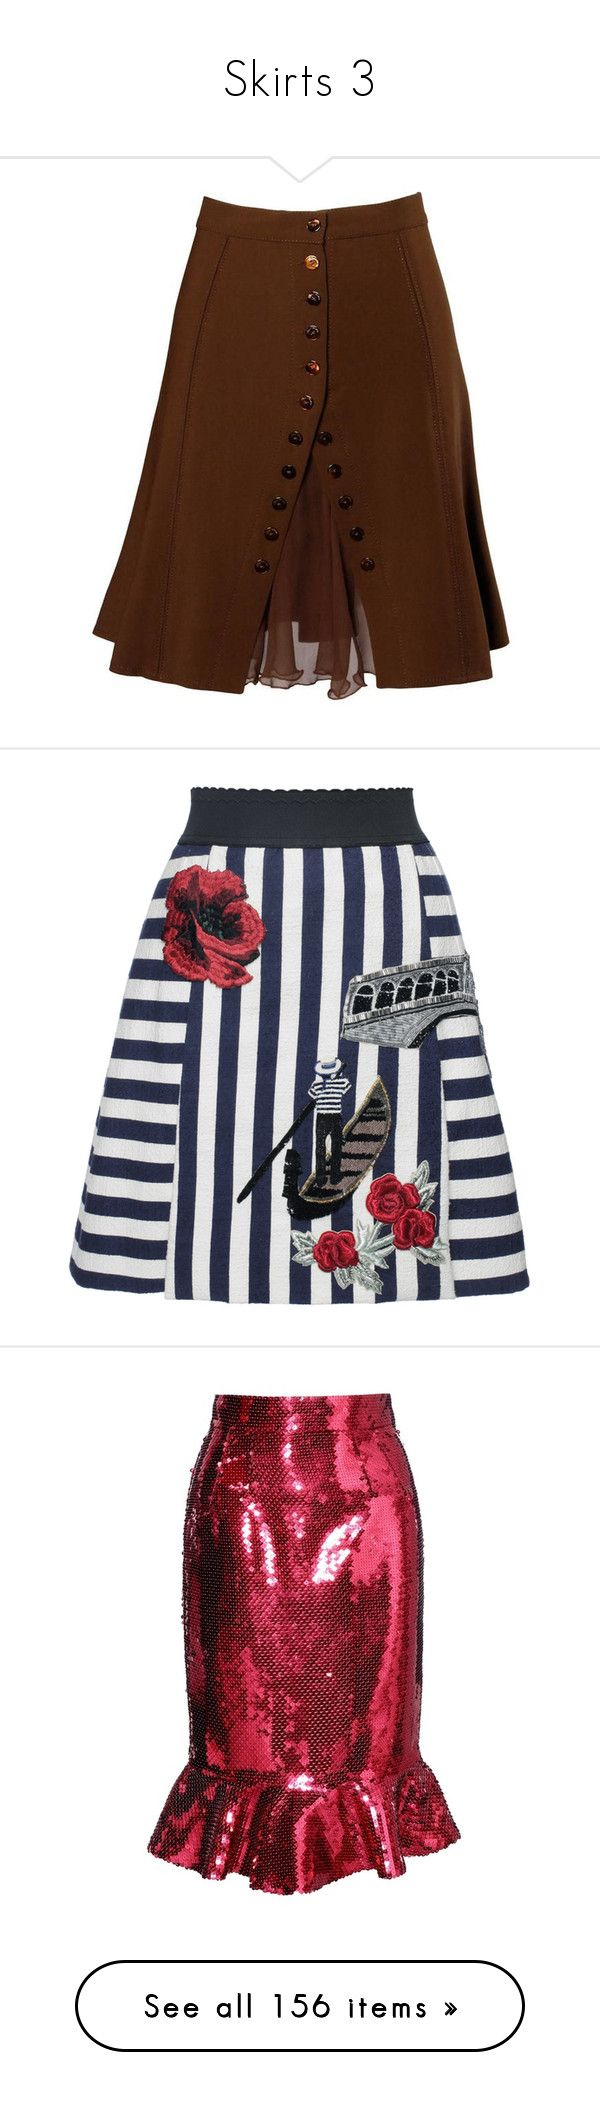 """""""Skirts 3"""" by missmimimj ❤ liked on Polyvore featuring skirts, brown, woolen skirt, see-through skirts, brown skirt, blumarine skirt, brown wool skirt, striped skirts, beaded skirt and navy striped skirt"""